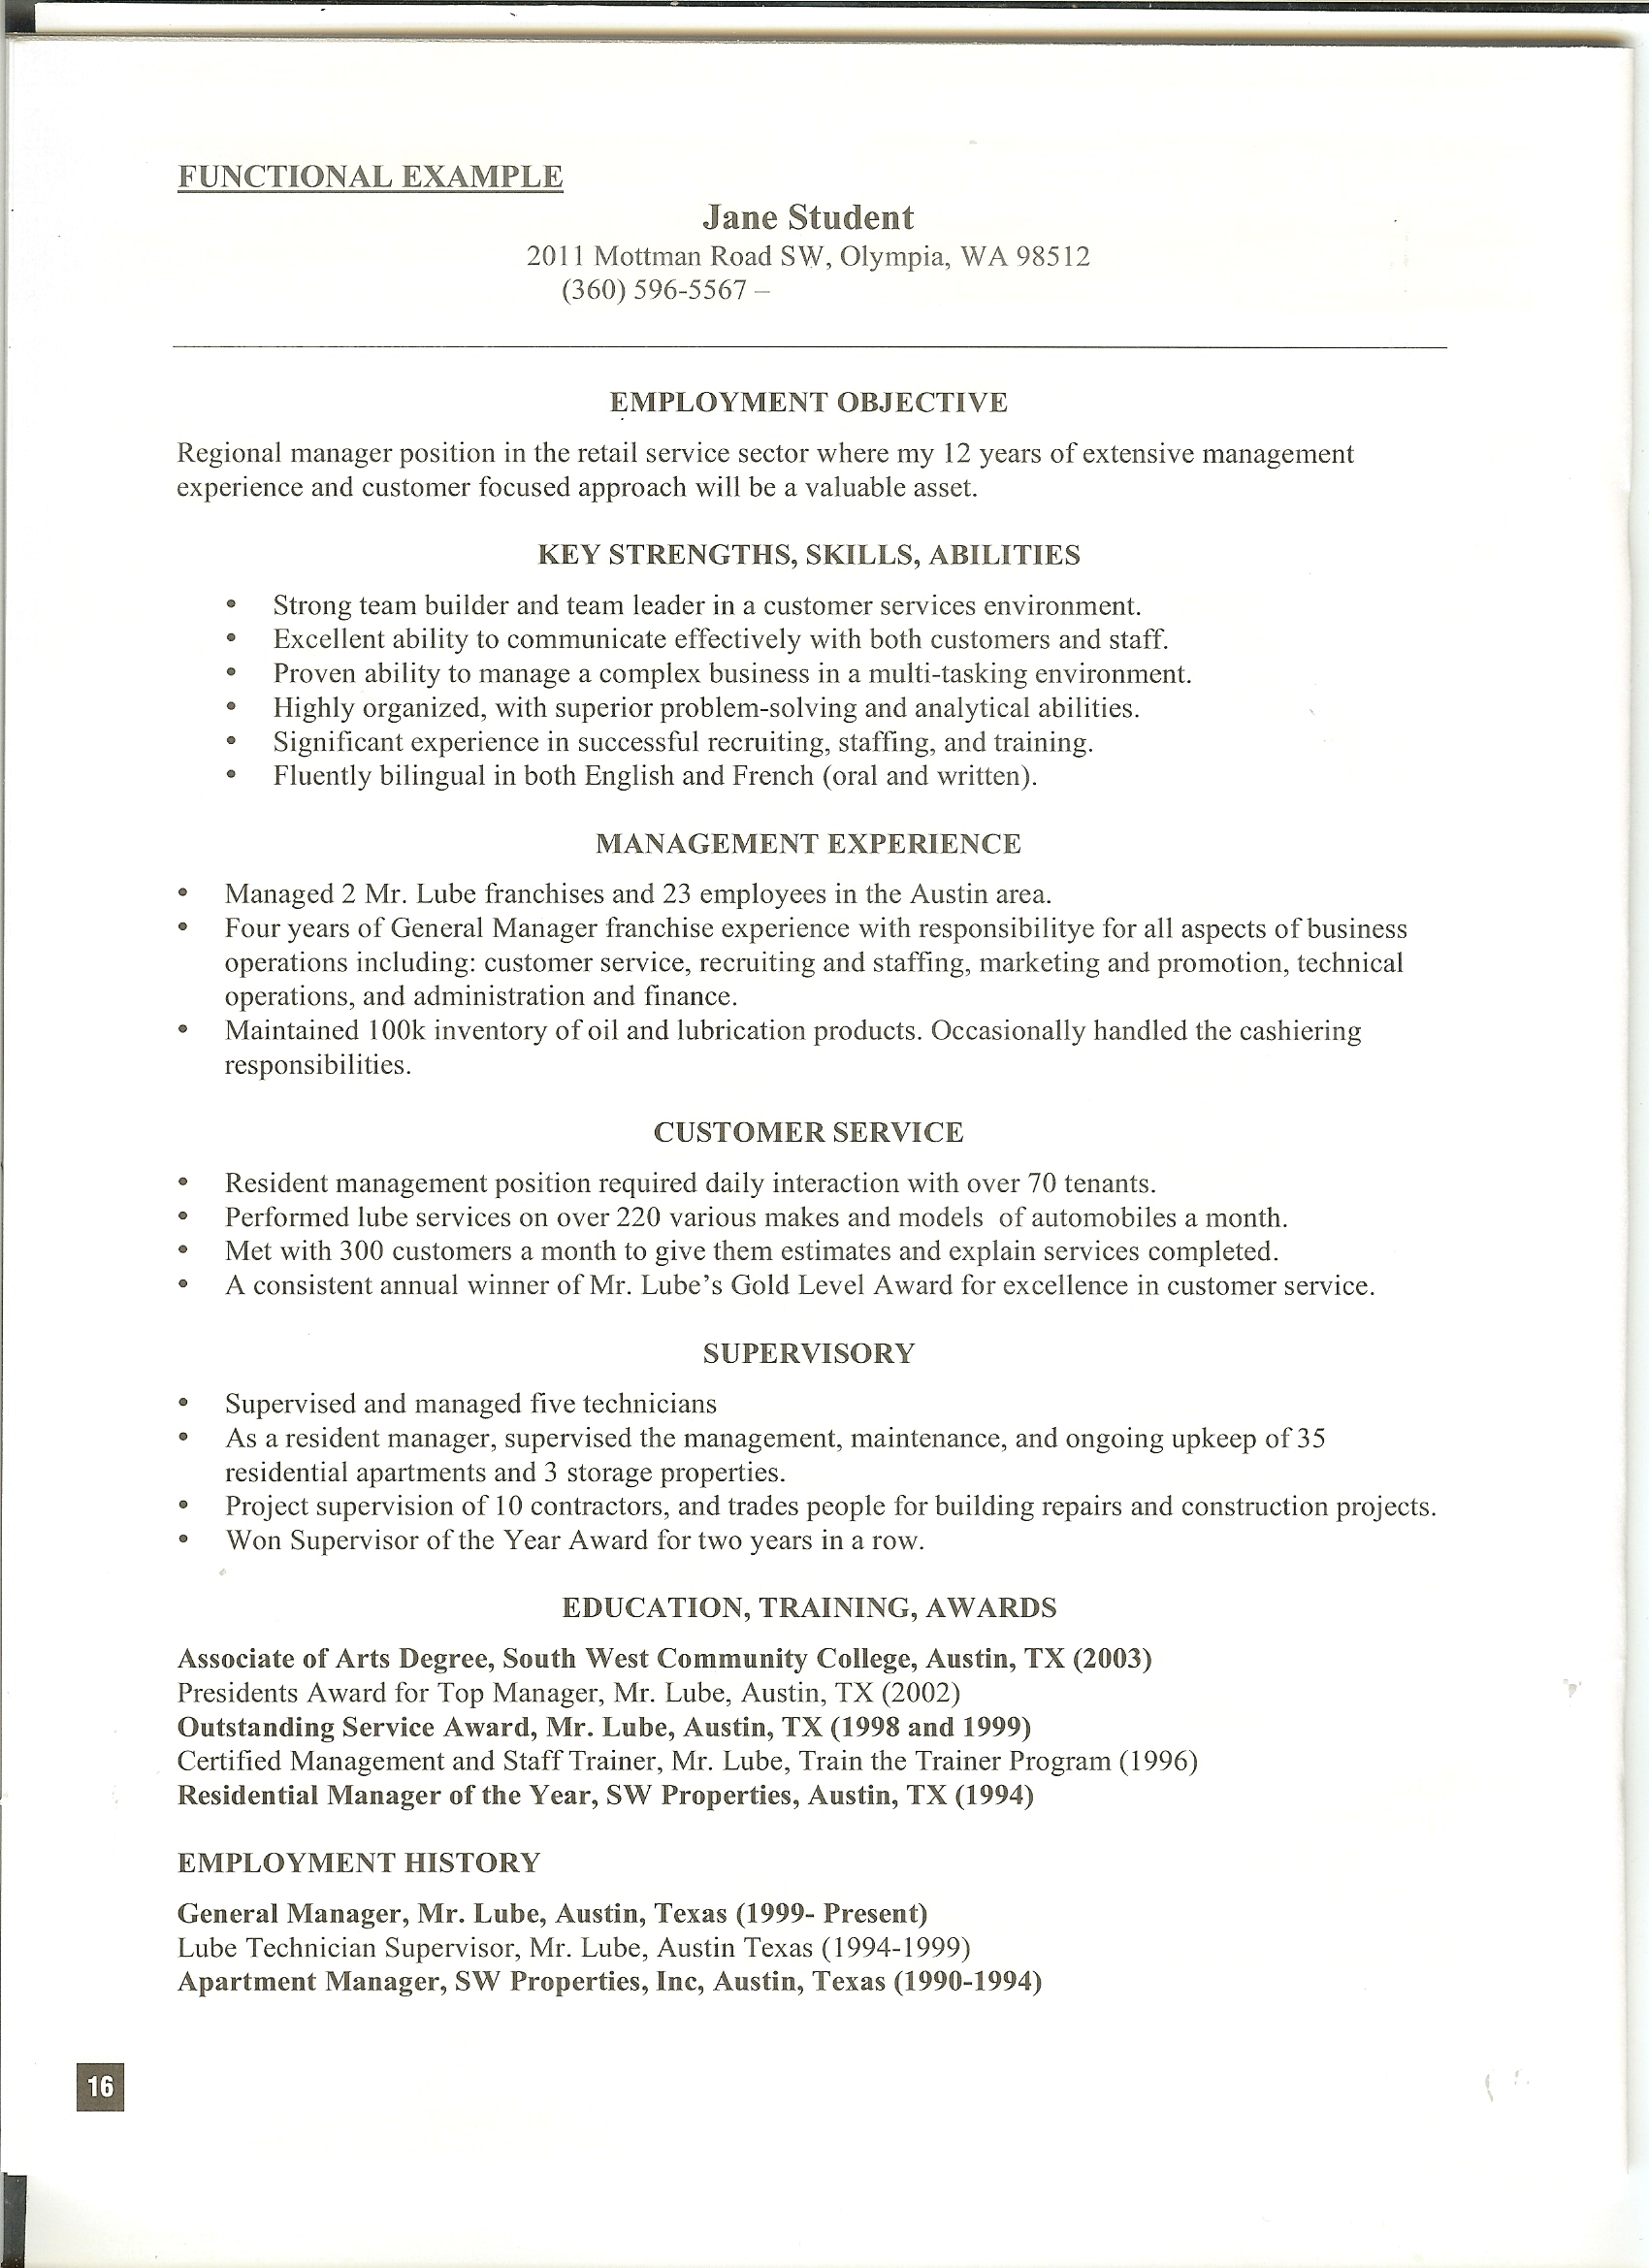 Functional Resume Writing Tsa Essay Help